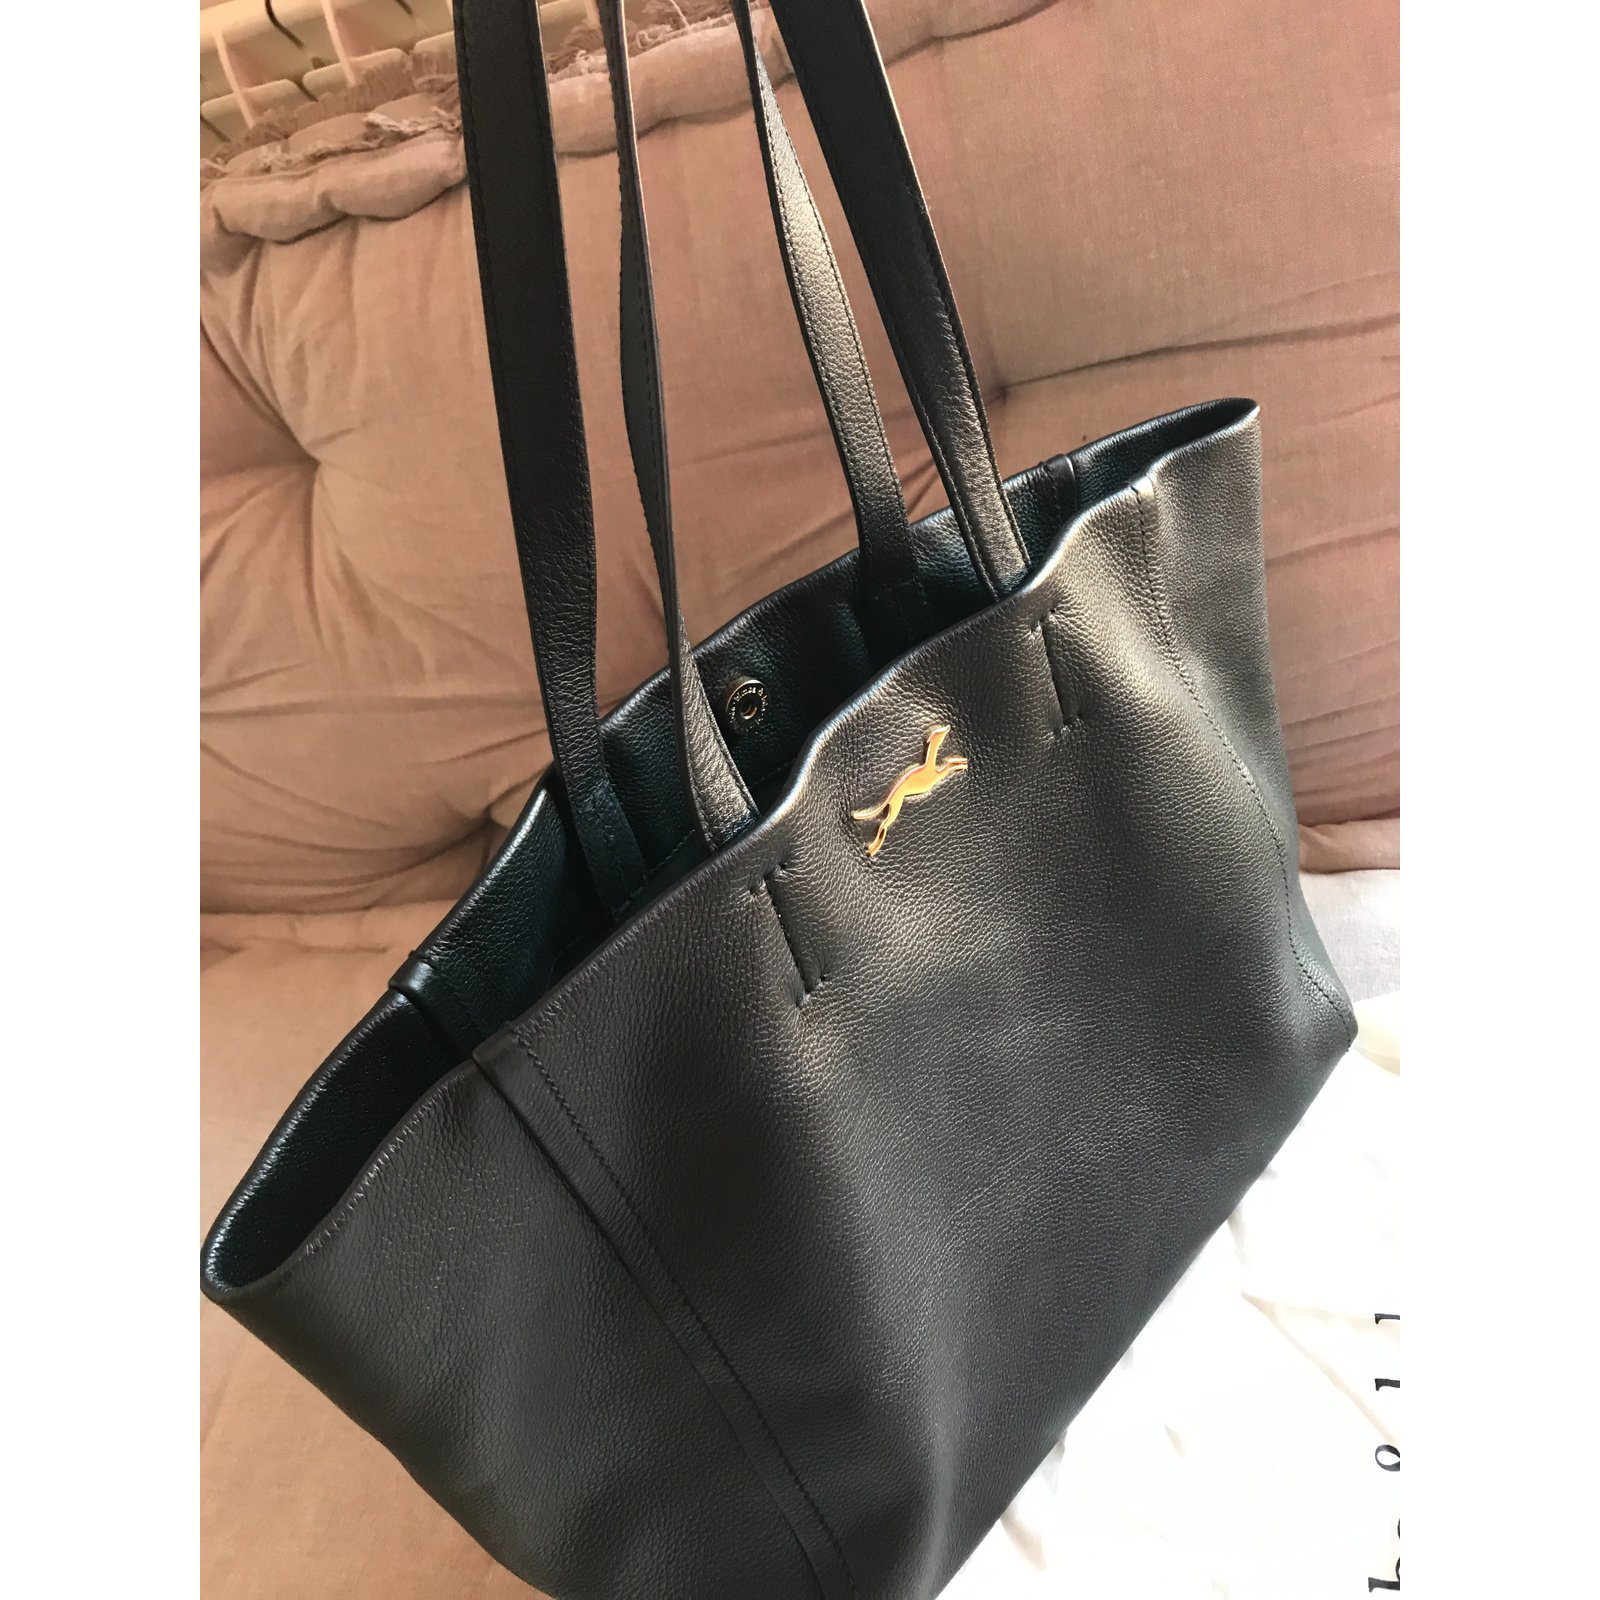 sac a main noir lola paris